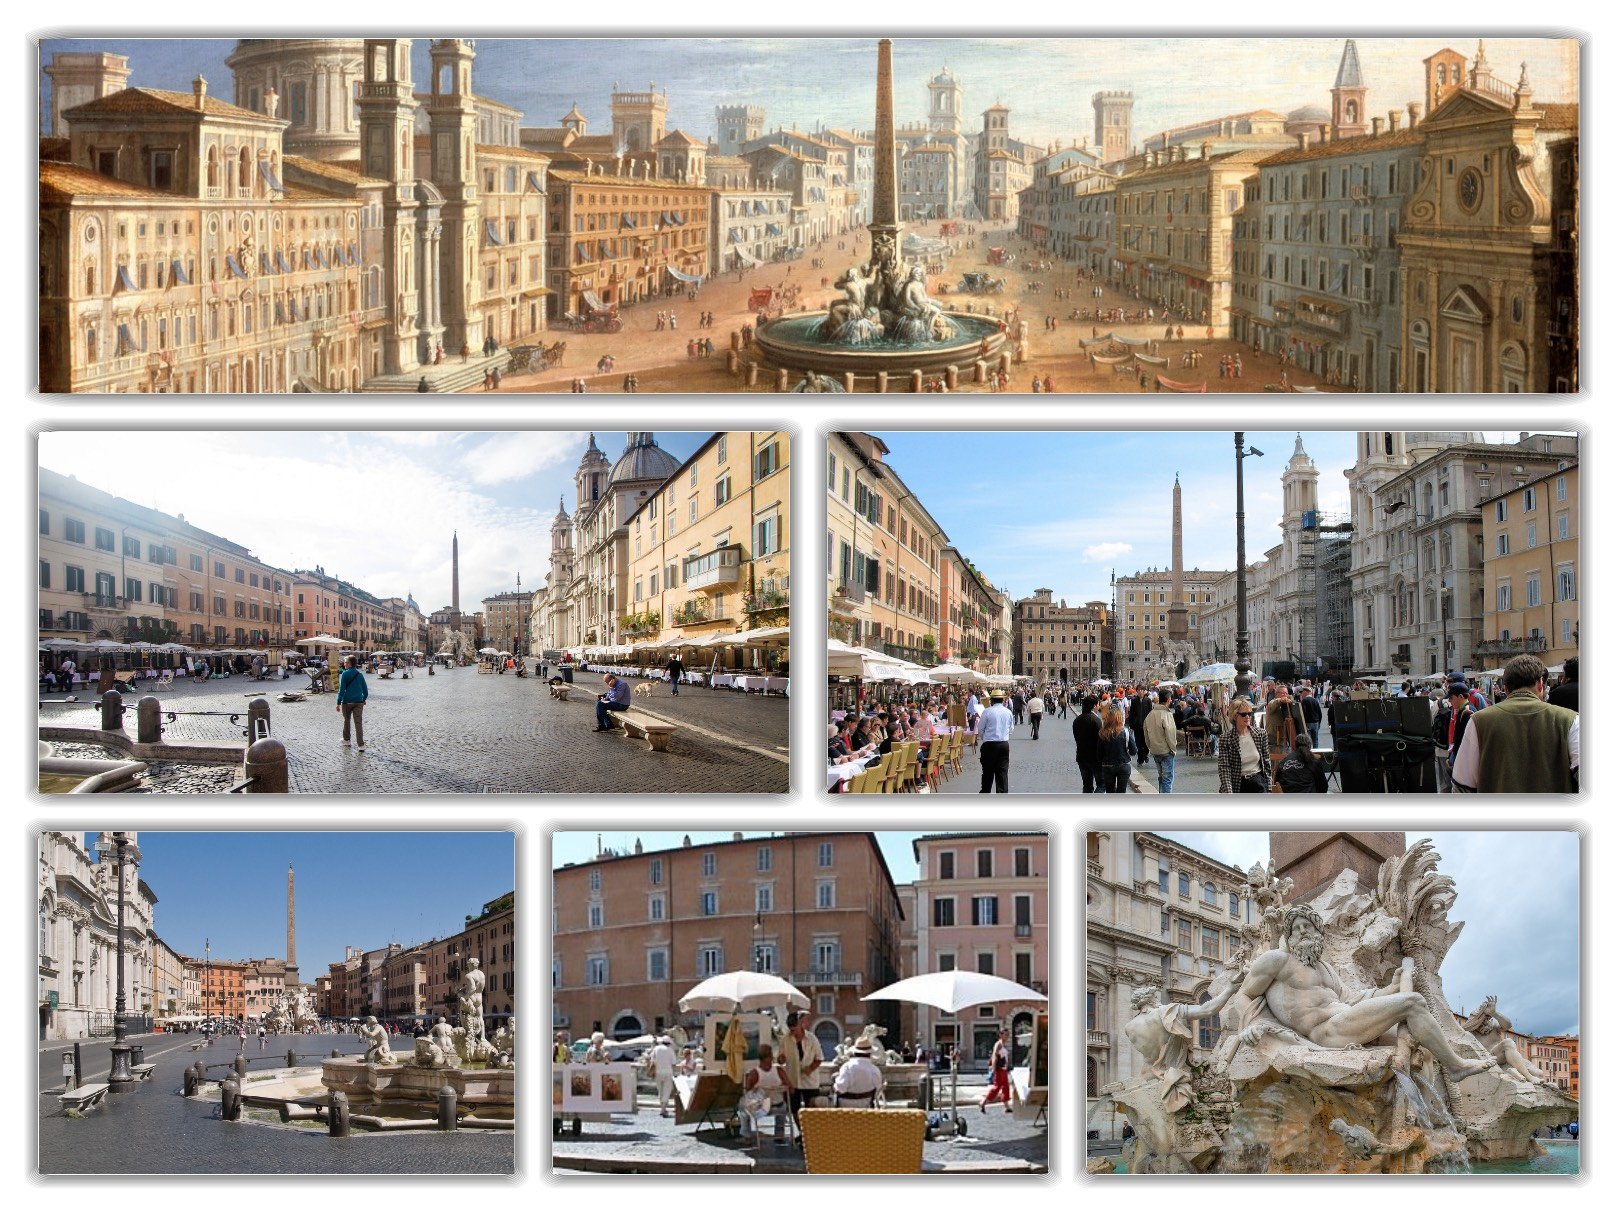 Piazza Navona in Rome Private Tours